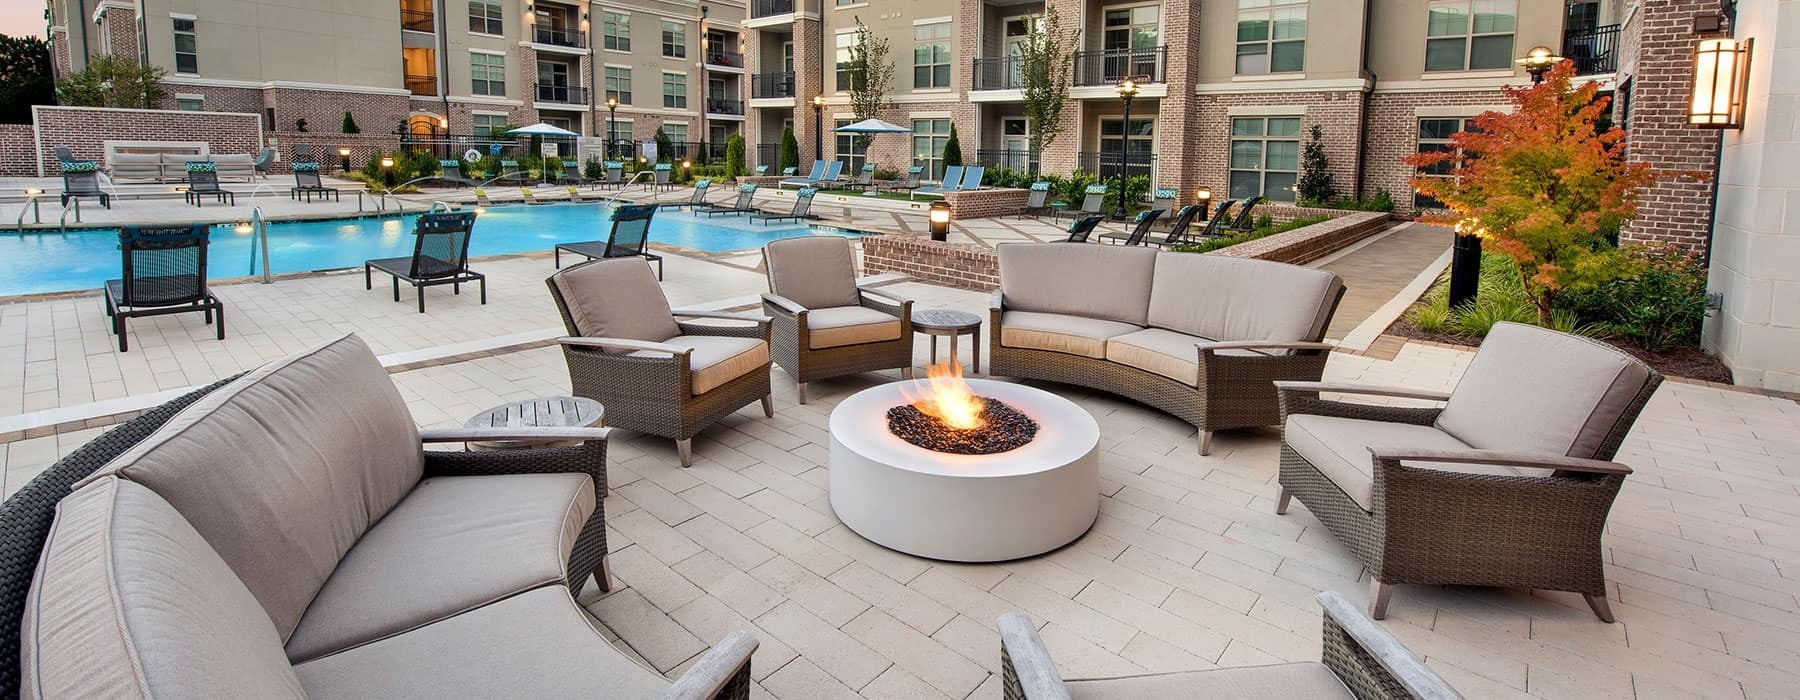 spacious seating surrounding a small firepit and near to the swimming pool